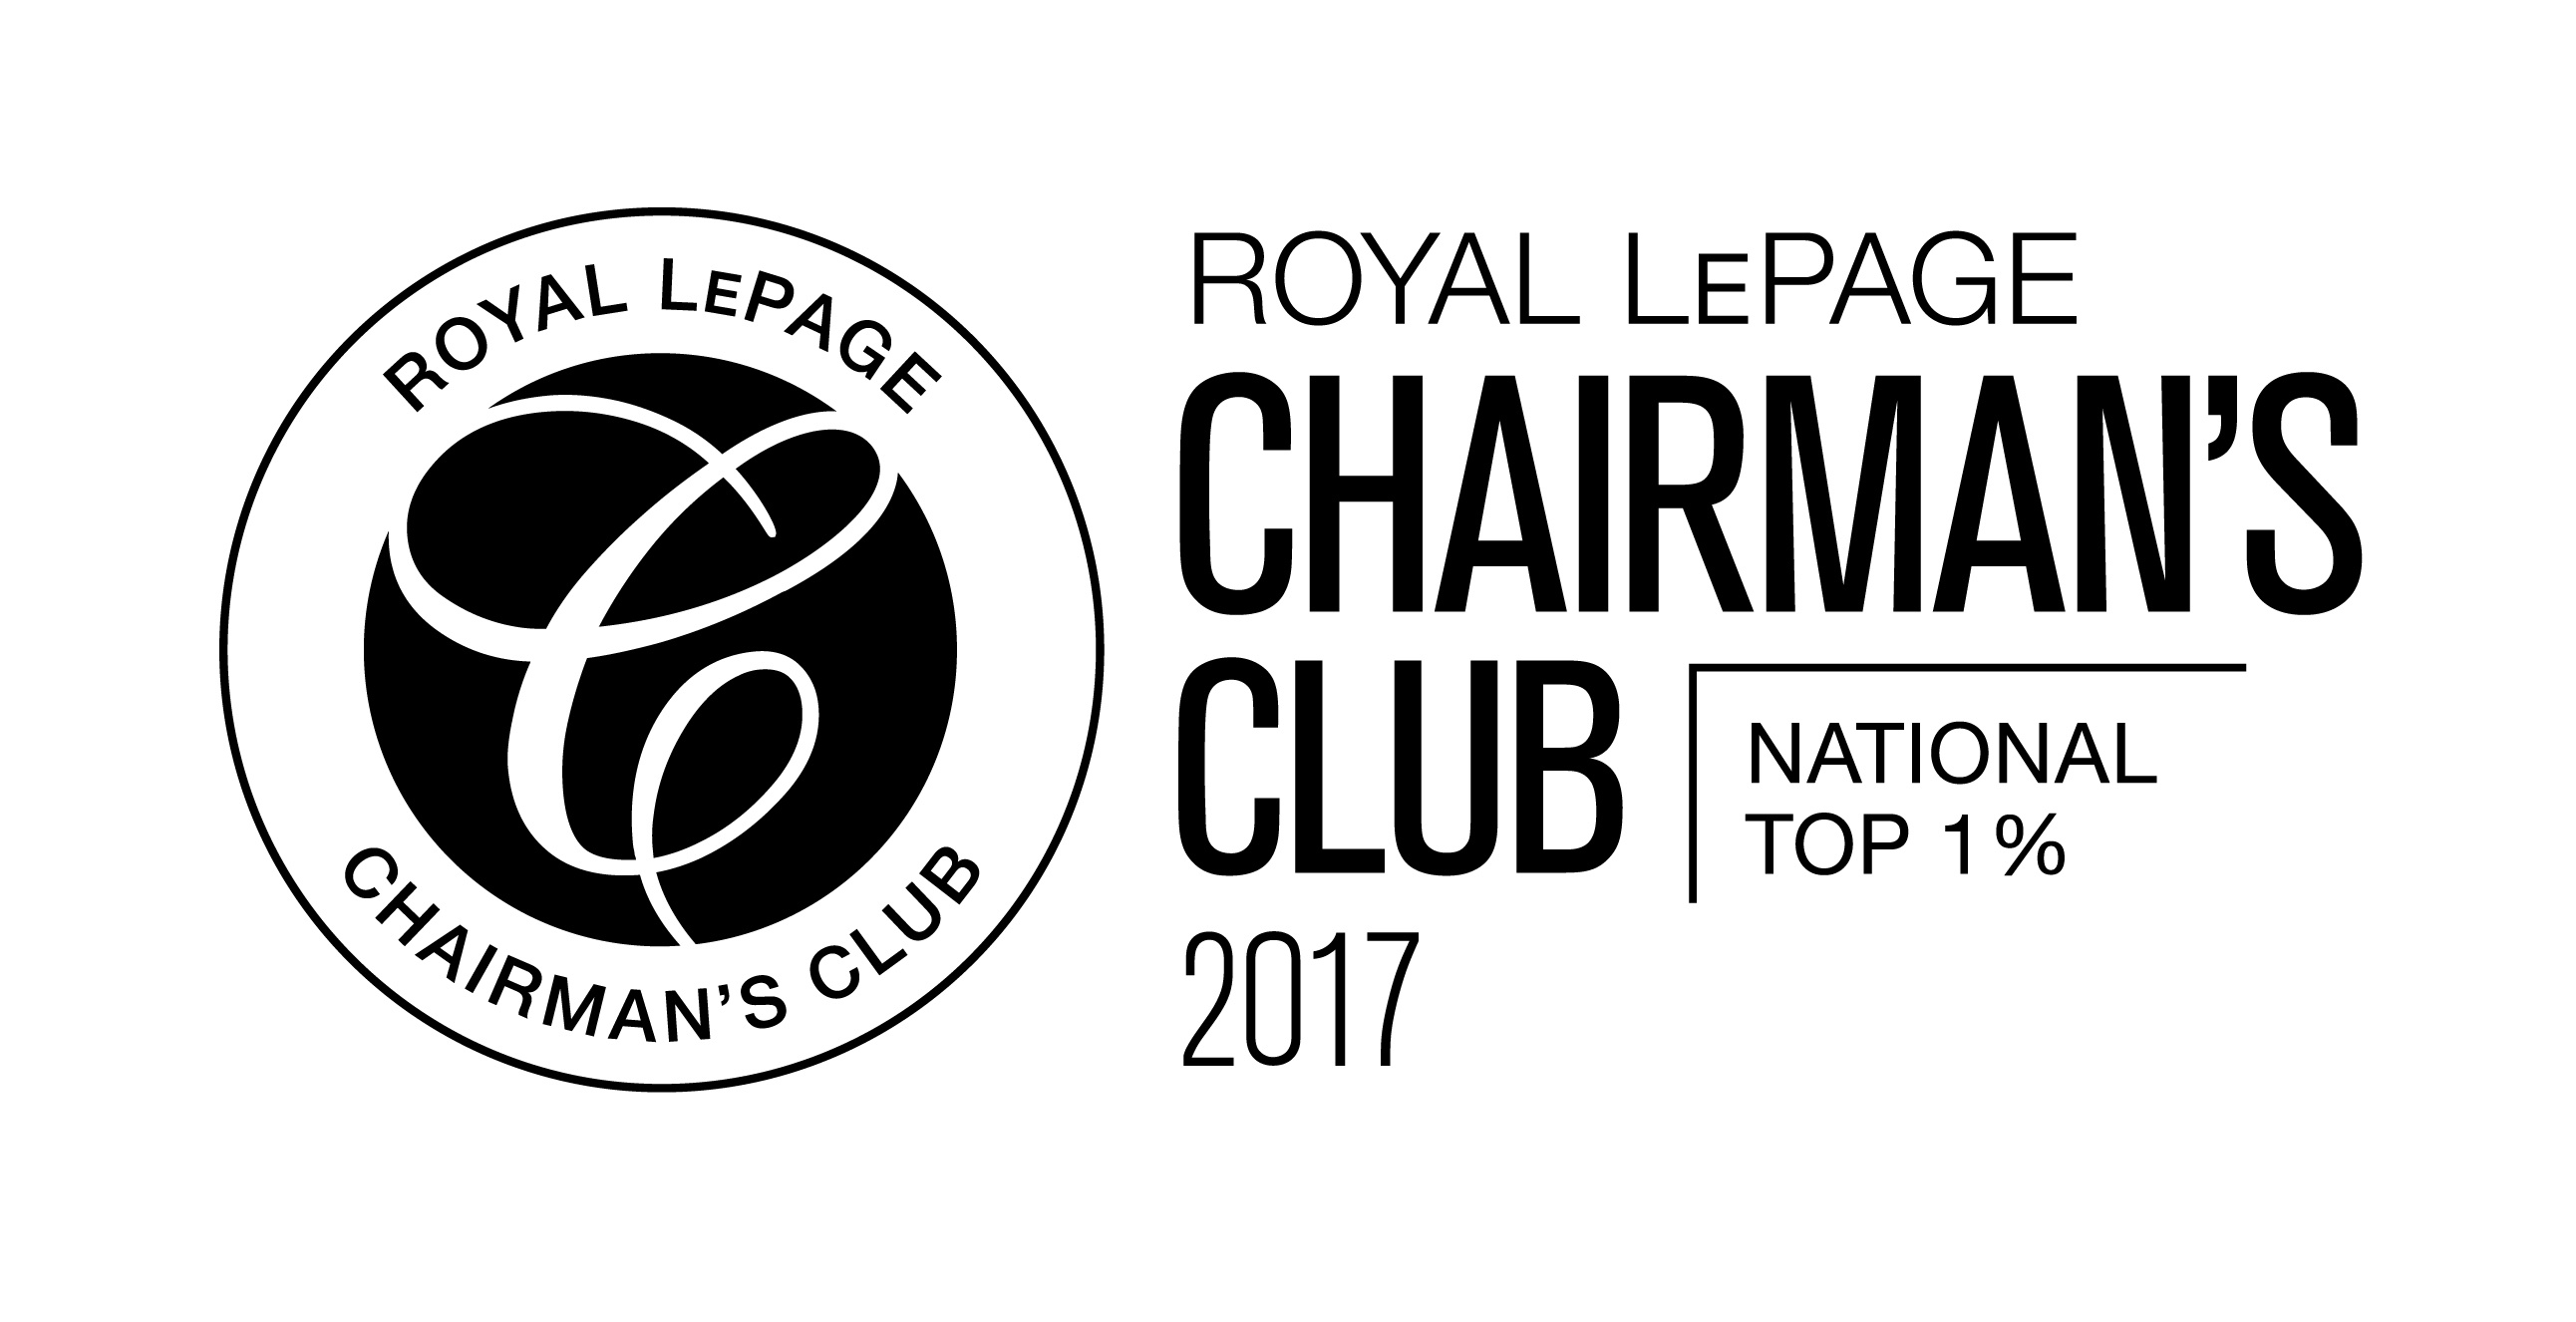 RLP-Chairmans-2017-EN-1Colour.jpg